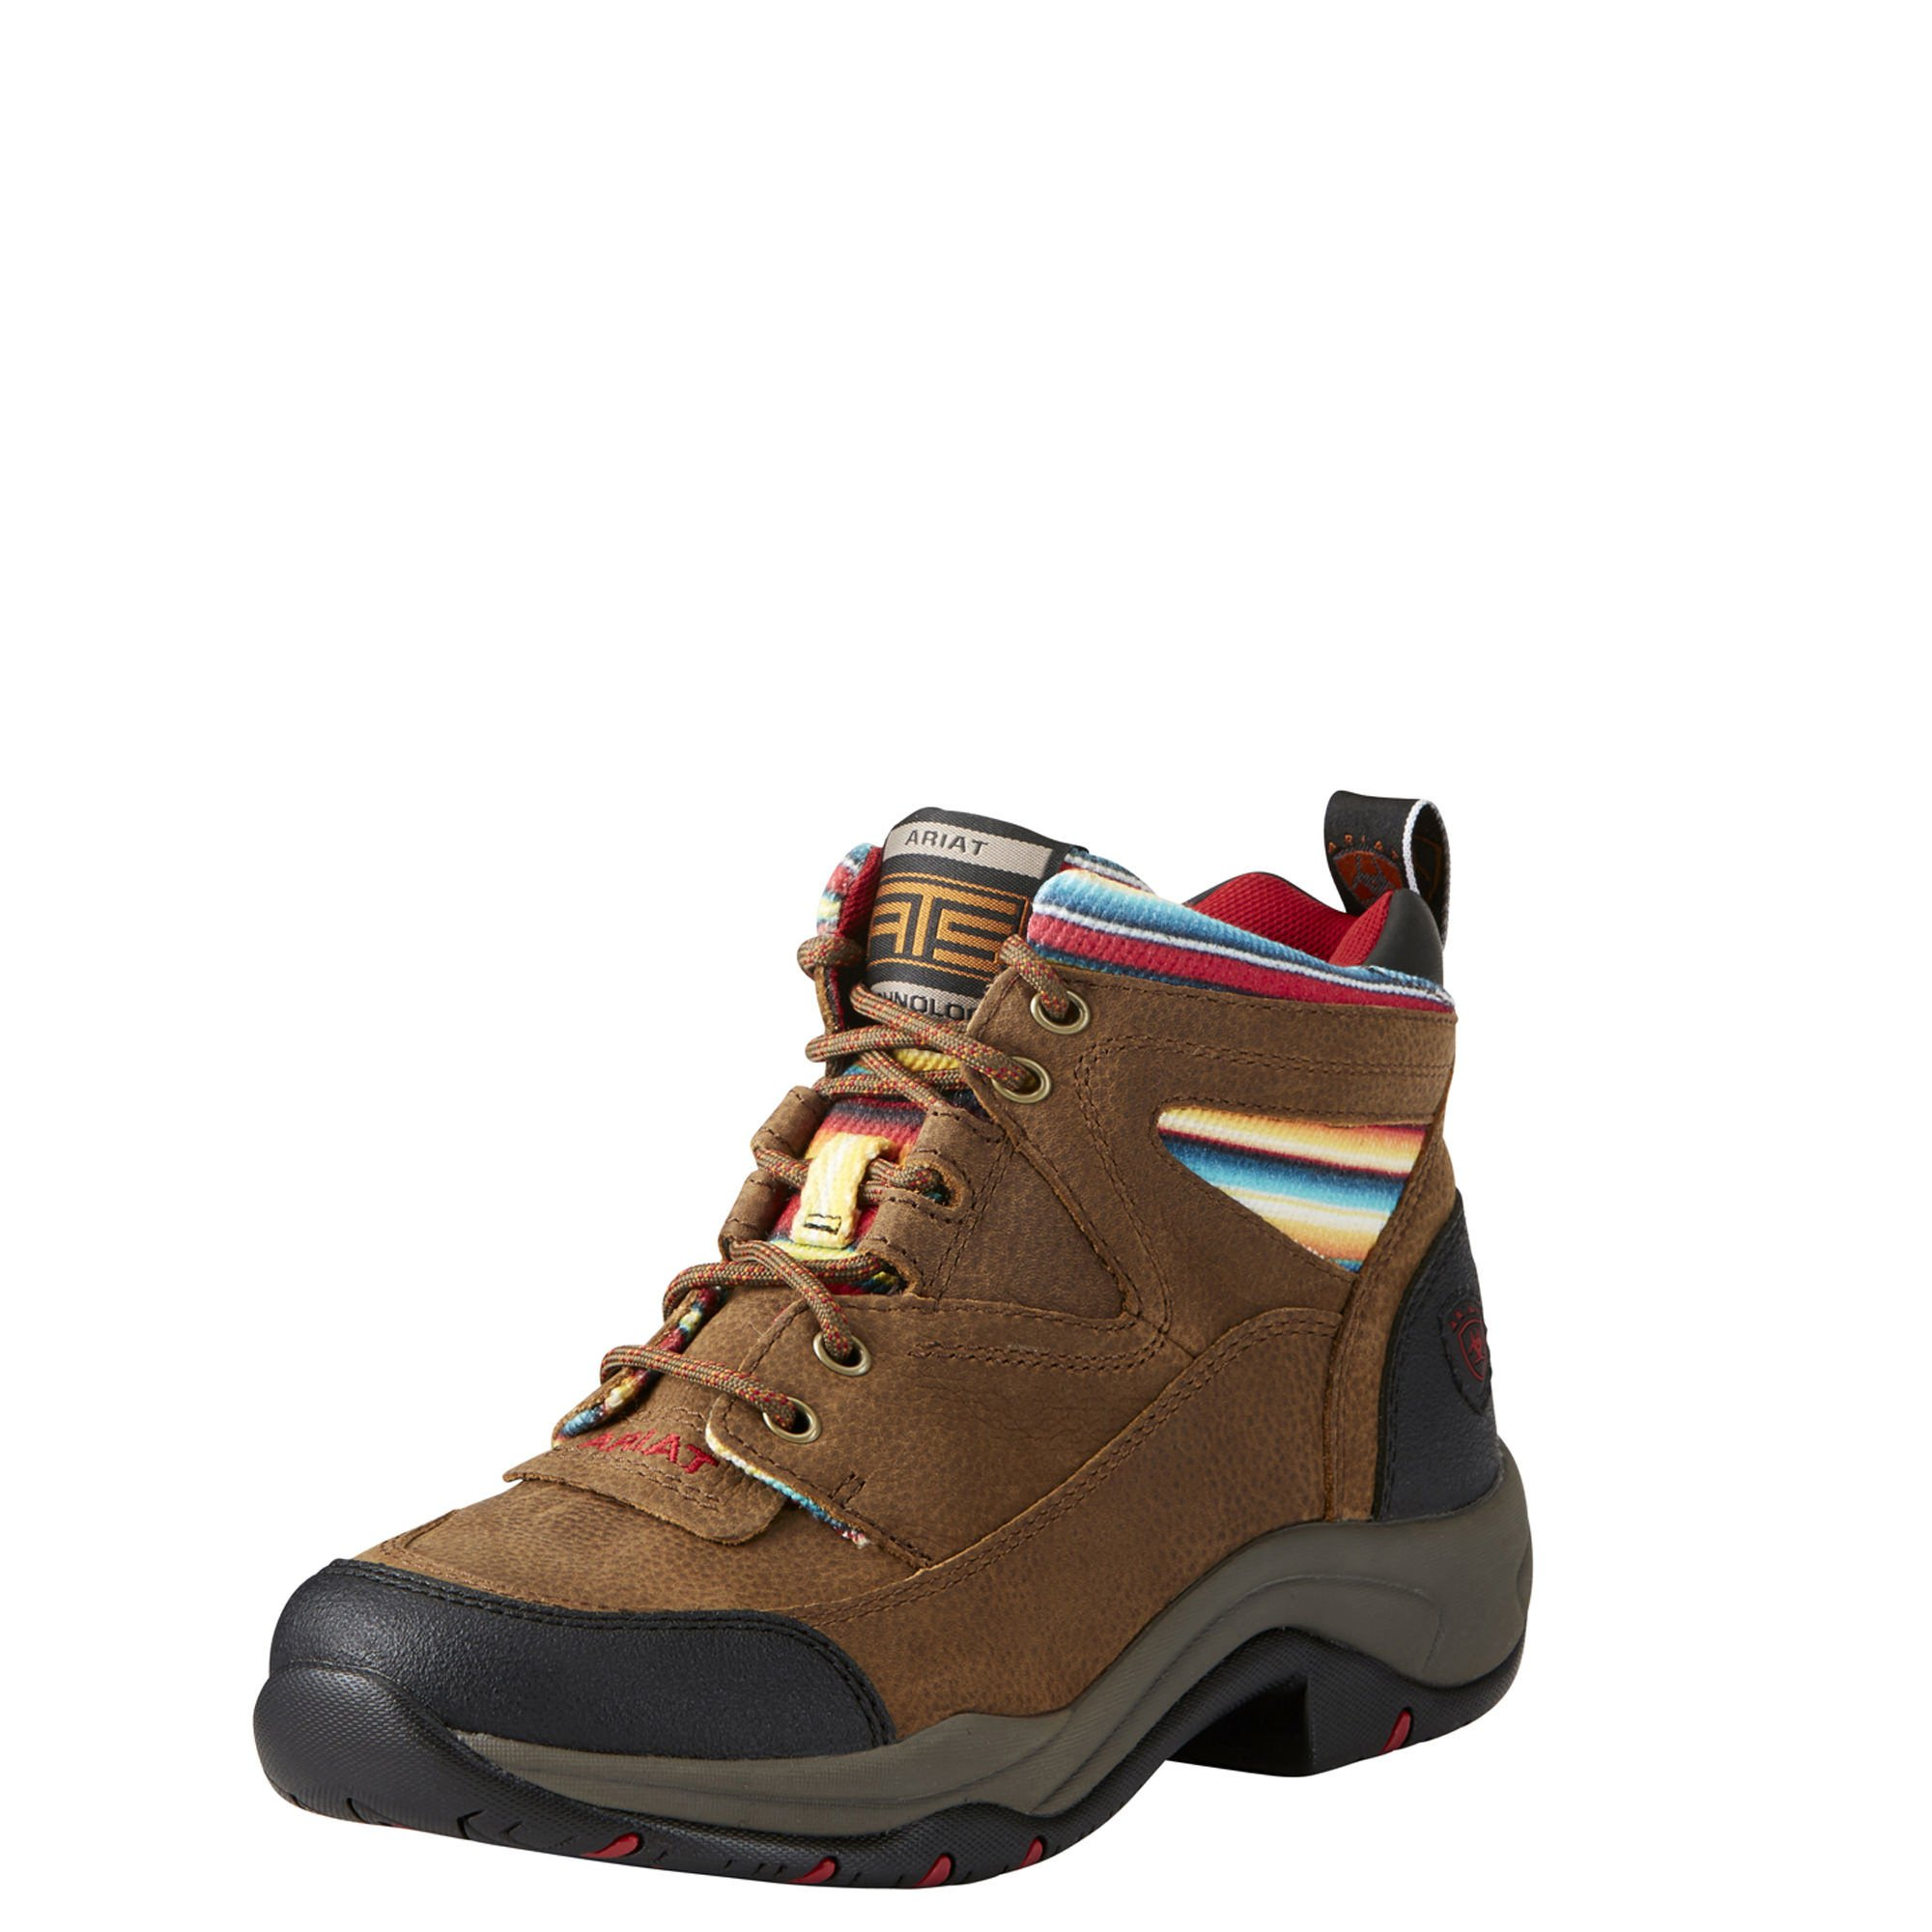 Ariat Women's Terrain Work Boot, Walnut/Serape, 9 B US